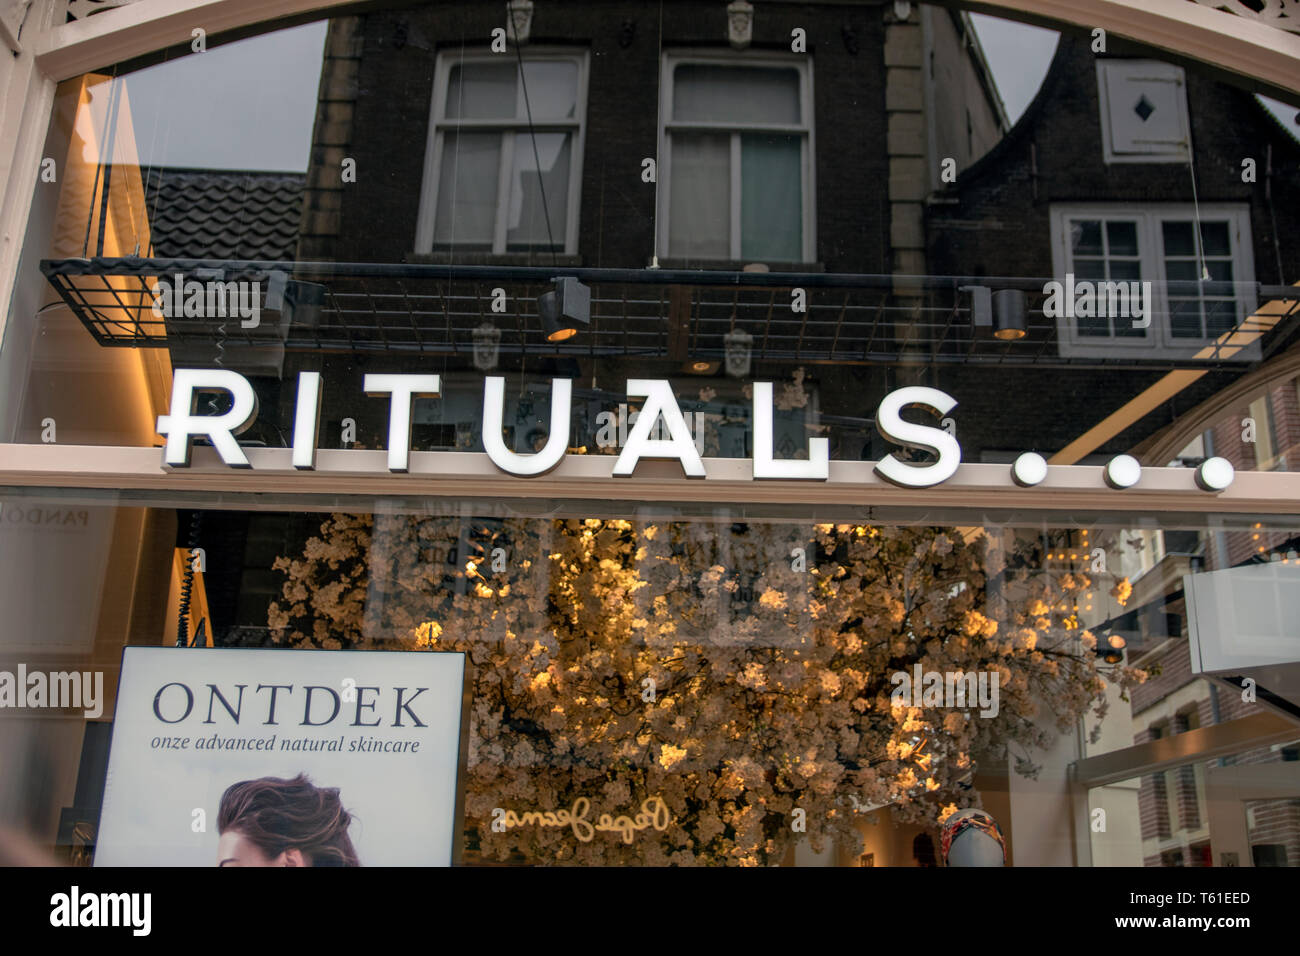 Billboard Rituals At Amsterdam The Netherlands 2019 - Stock Image